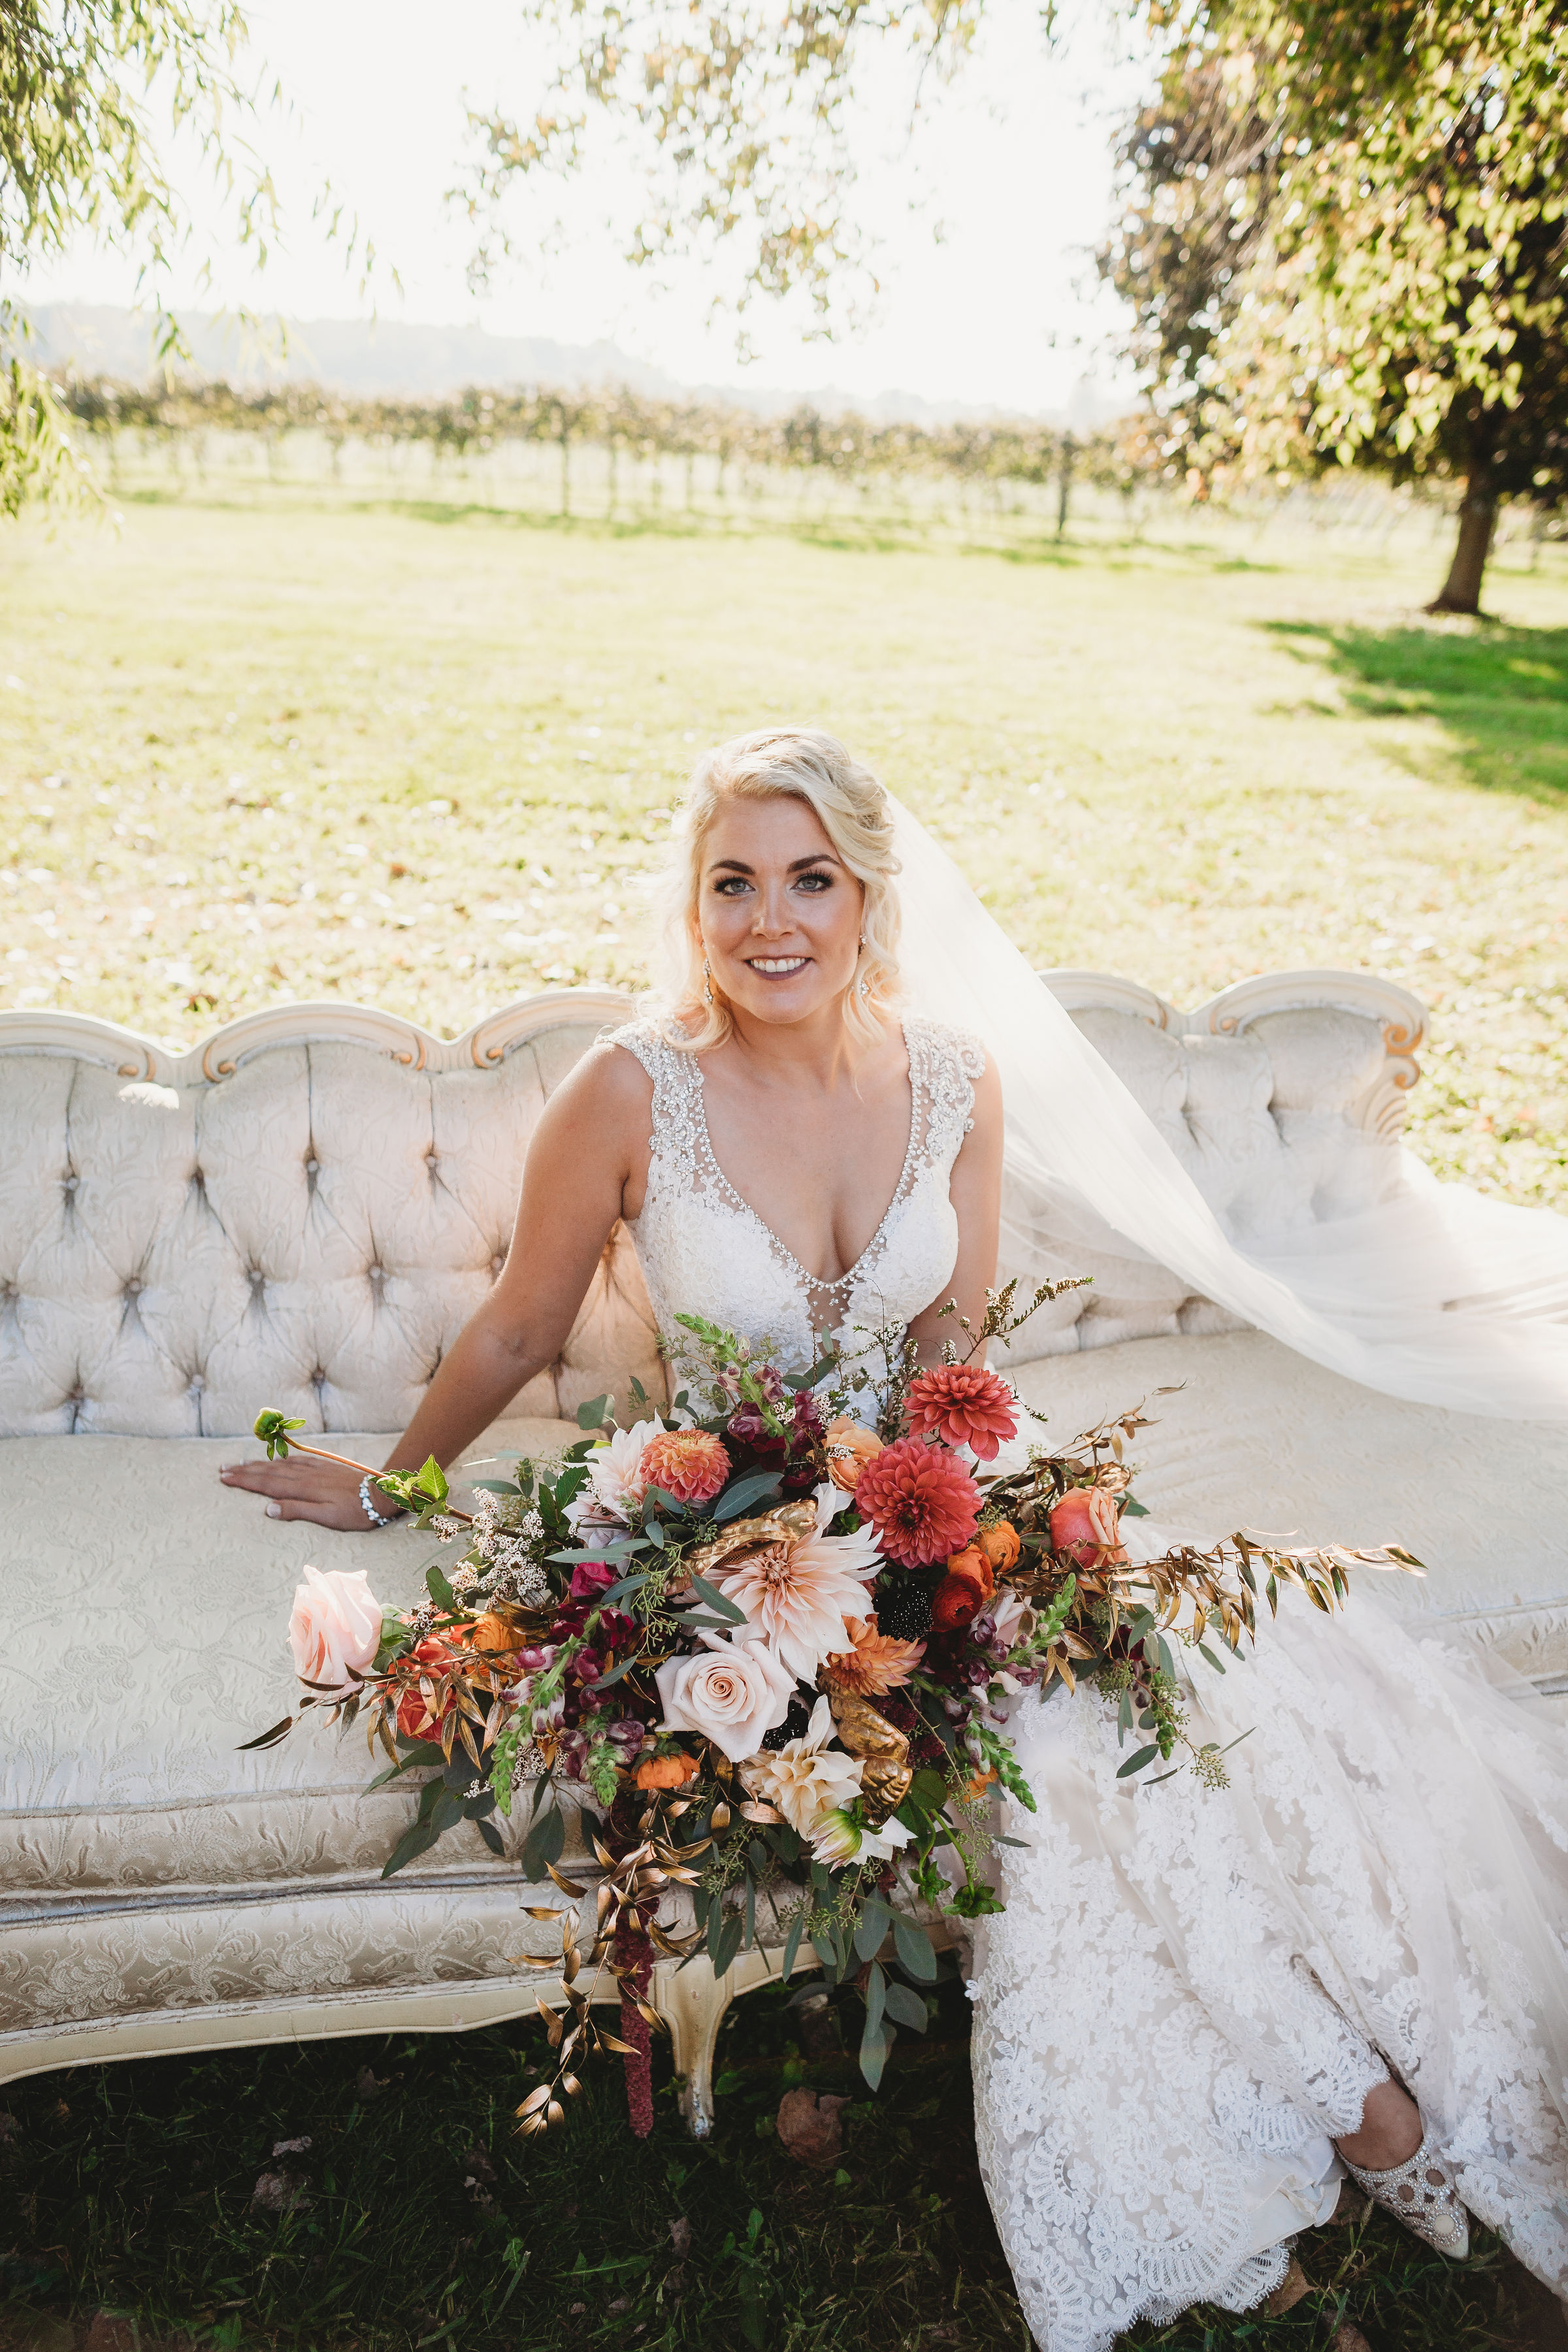 {Photo by: Wild Bliss Photography}